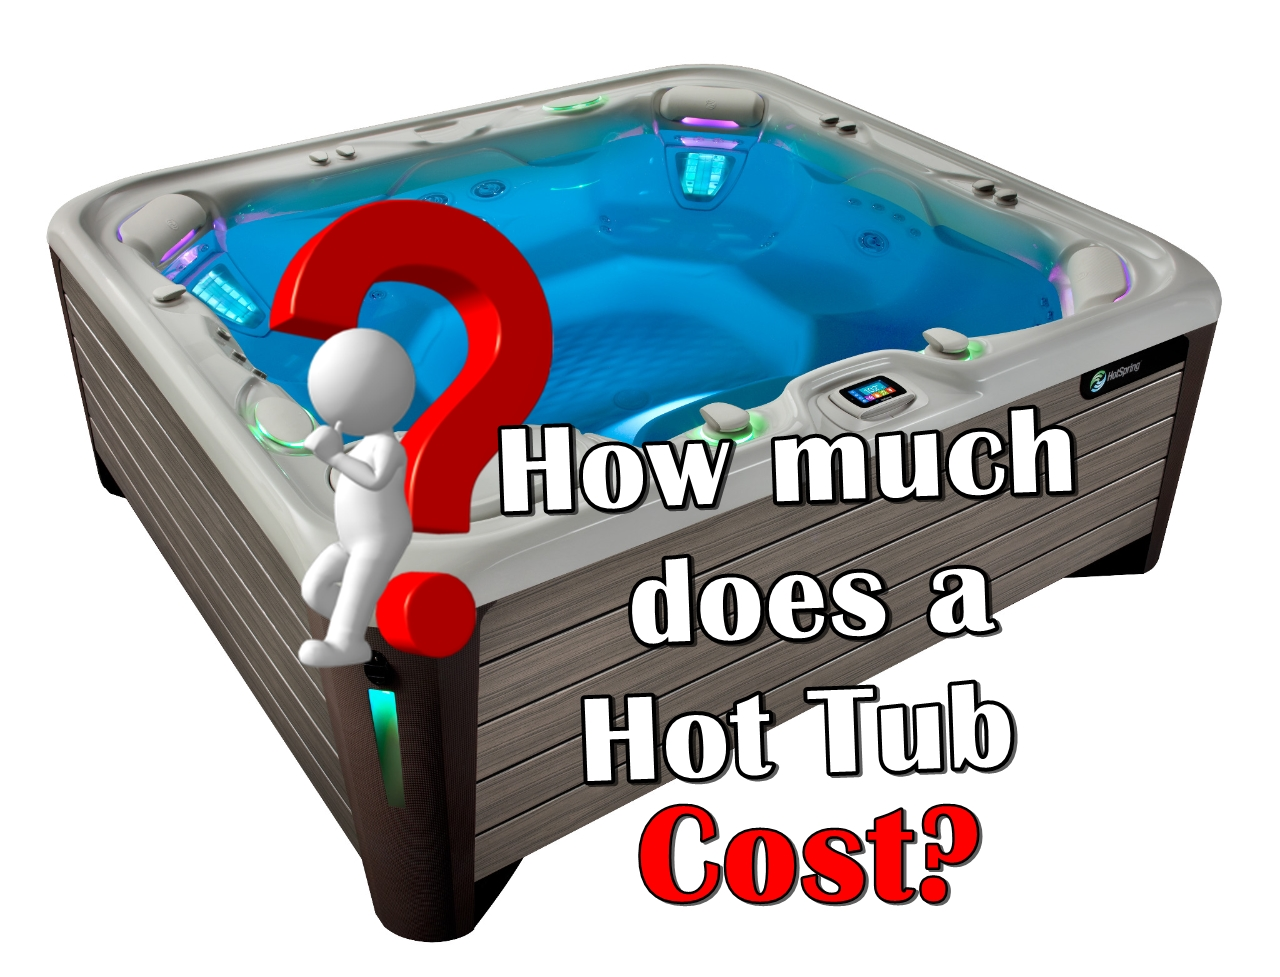 How much a Hot tub Cost? Family Image